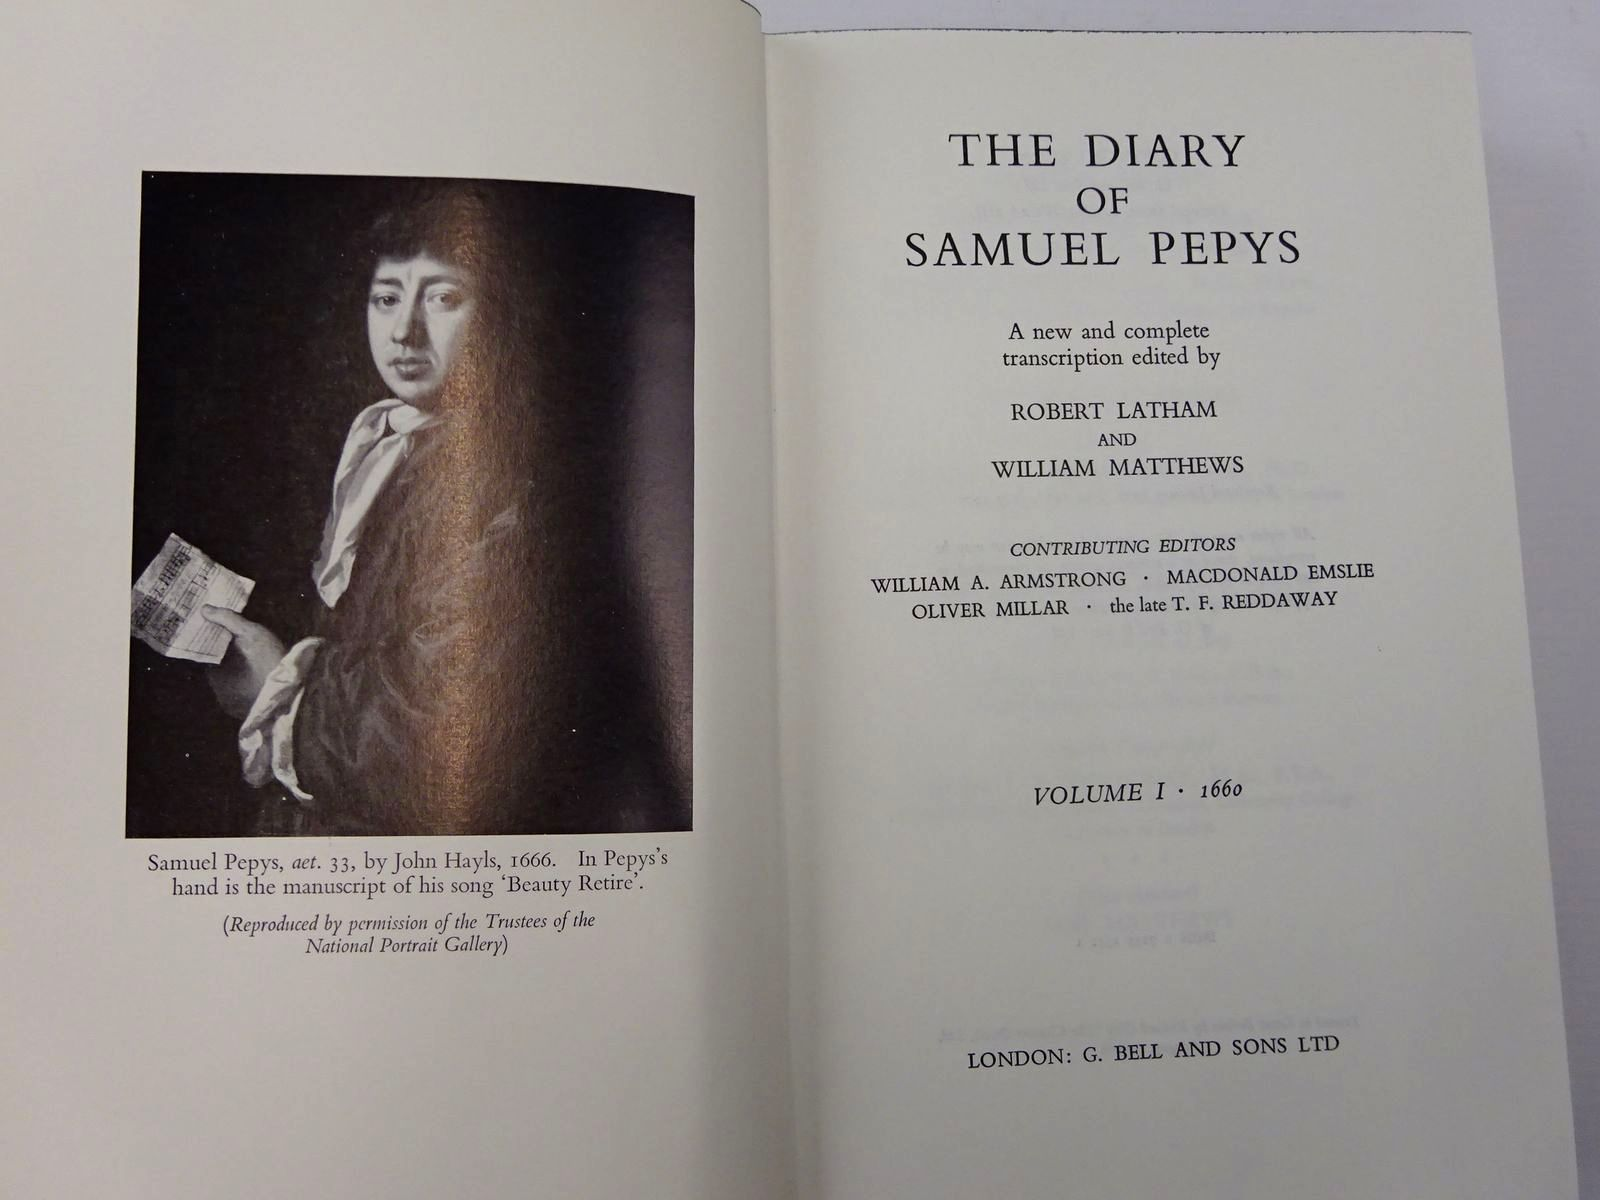 Photo of THE DIARY OF SAMUEL PEPYS (11 VOLS) written by Latham, Robert Matthews, William Pepys, Samuel published by G. Bell & Sons Ltd. (STOCK CODE: 2129956)  for sale by Stella & Rose's Books